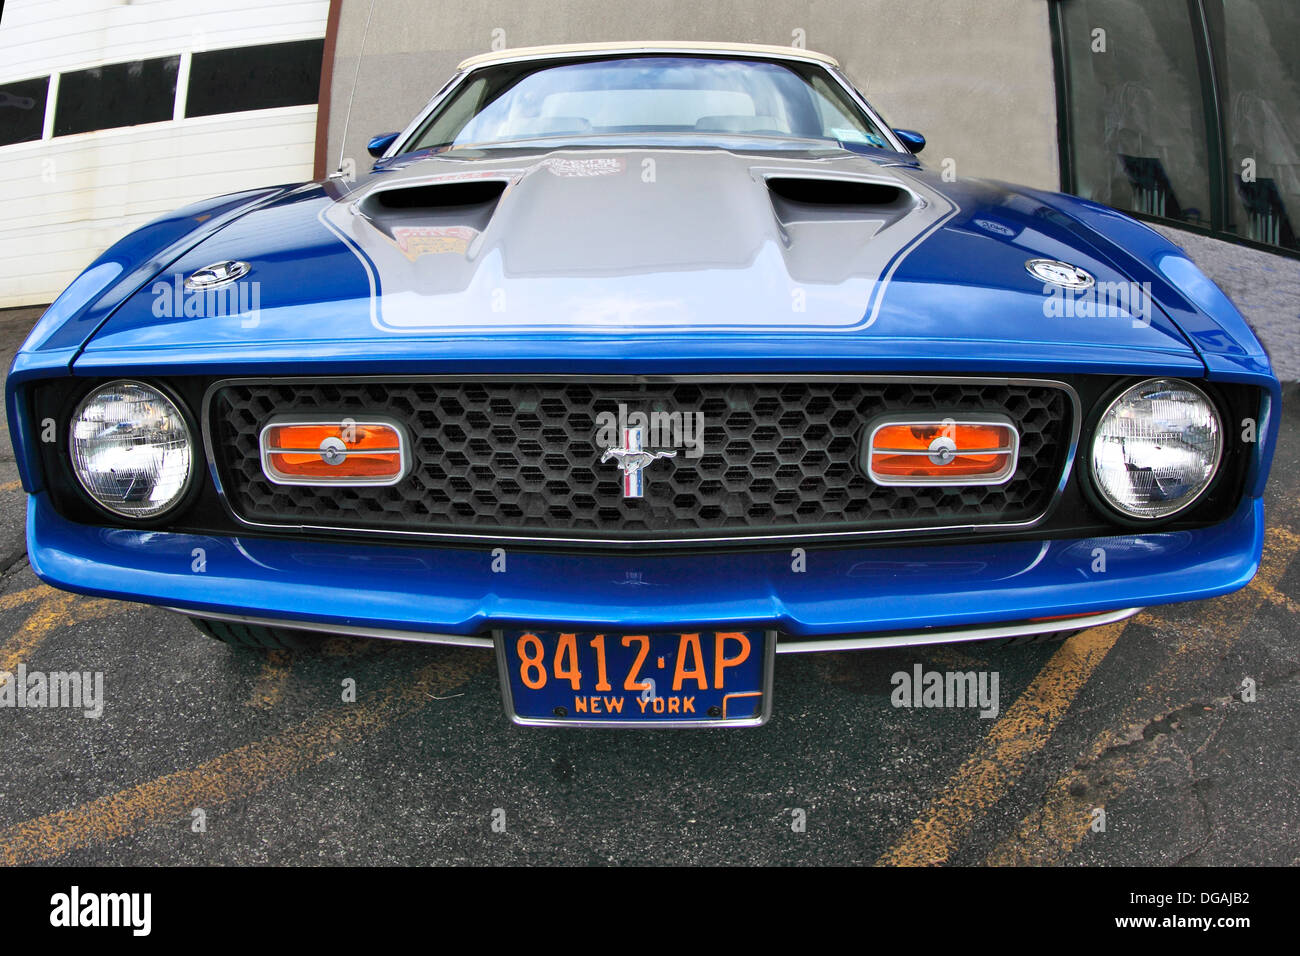 Classic Ford Mustang Mach 1 Long Island New York - Stock Image